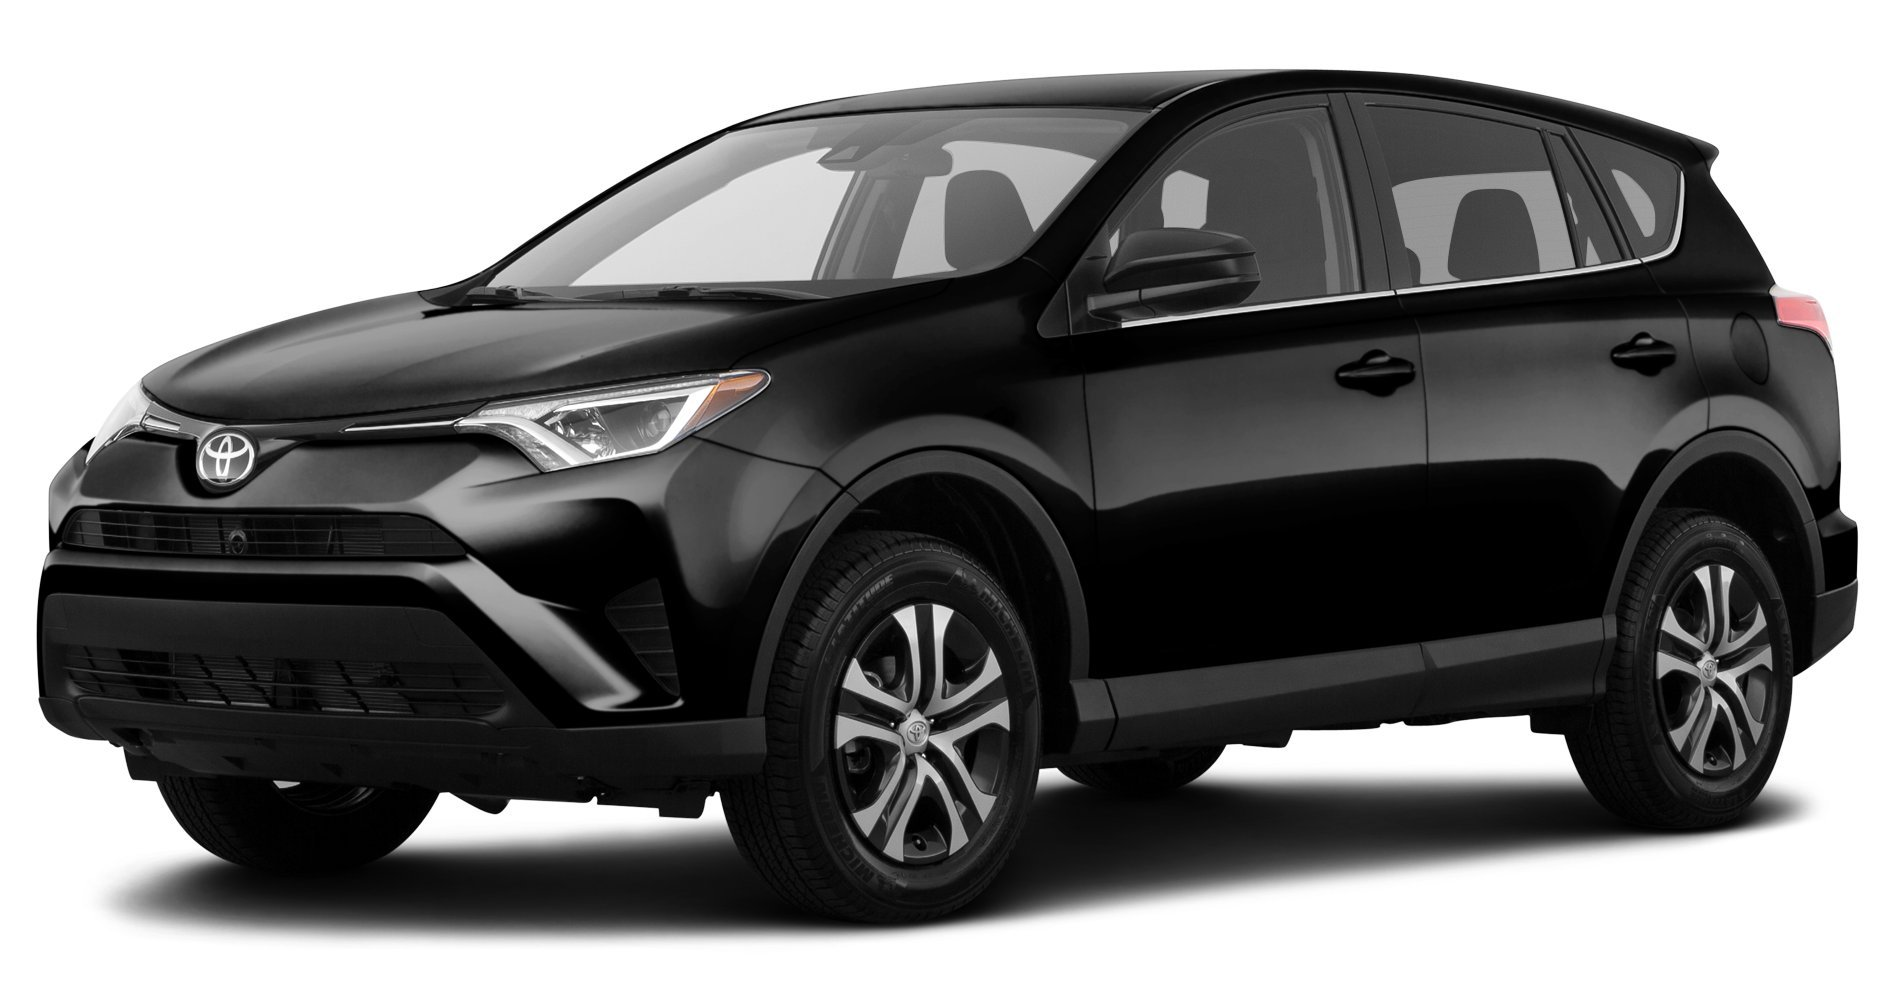 2018 toyota rav4 reviews images and specs vehicles. Black Bedroom Furniture Sets. Home Design Ideas